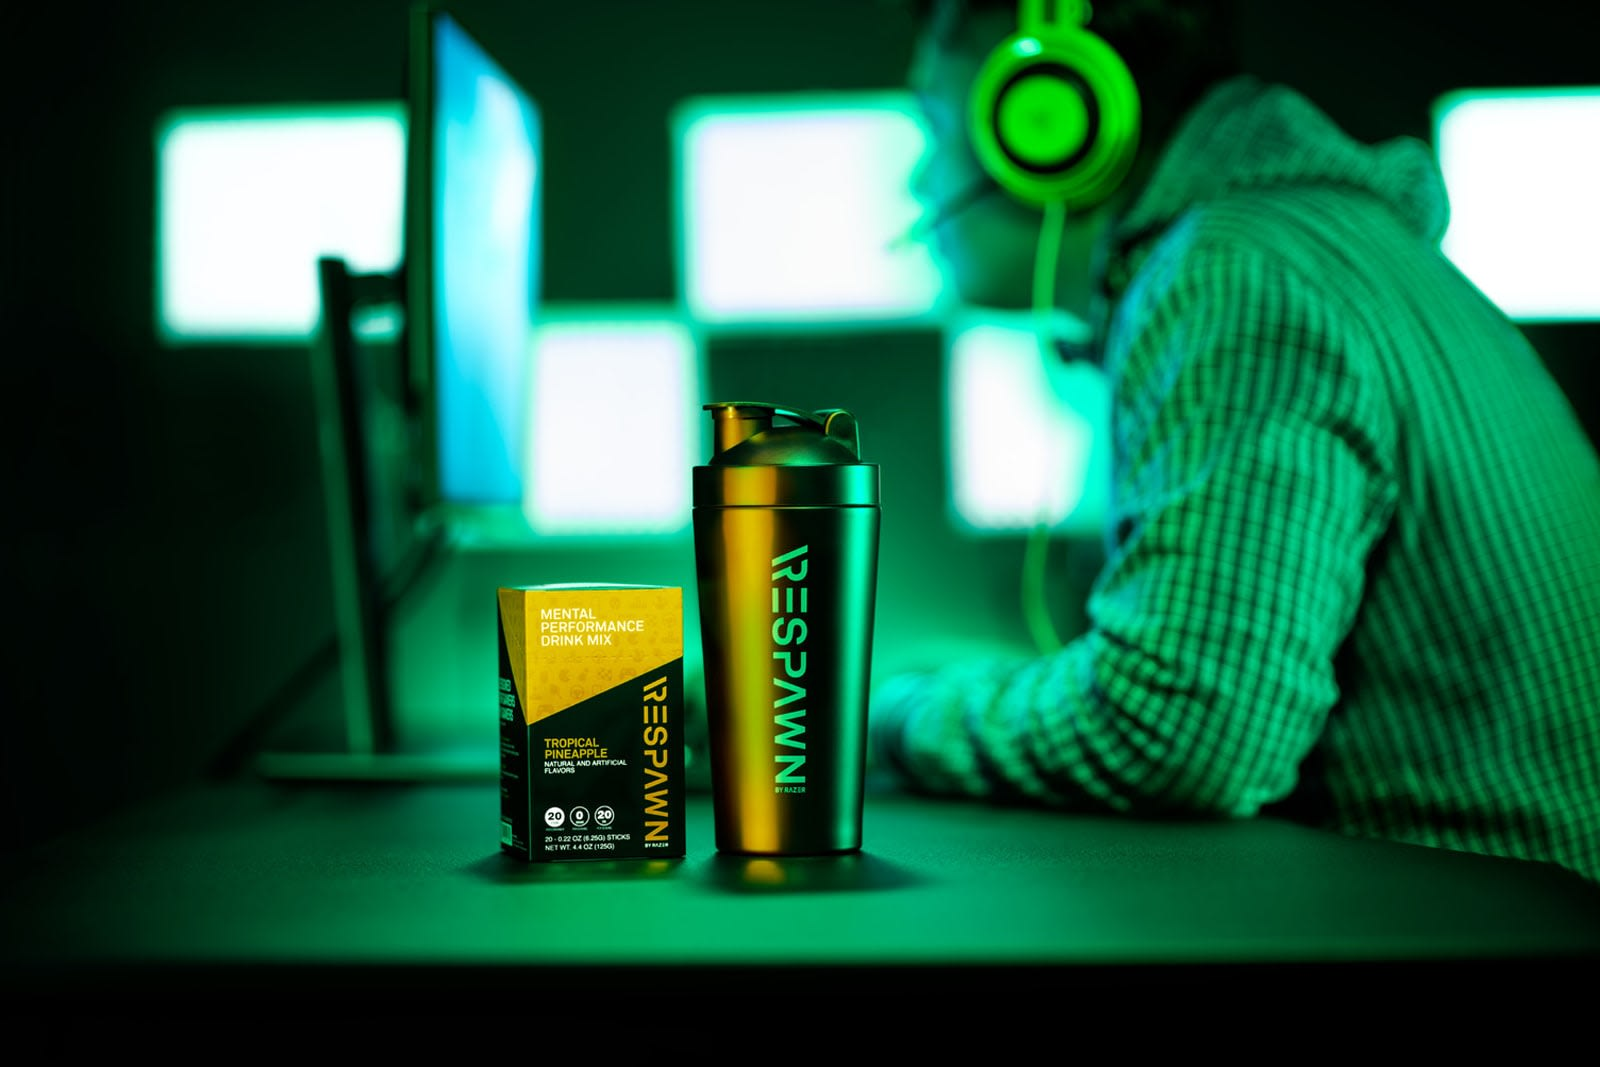 Razer's 'mental performance' drink probably won't quench its